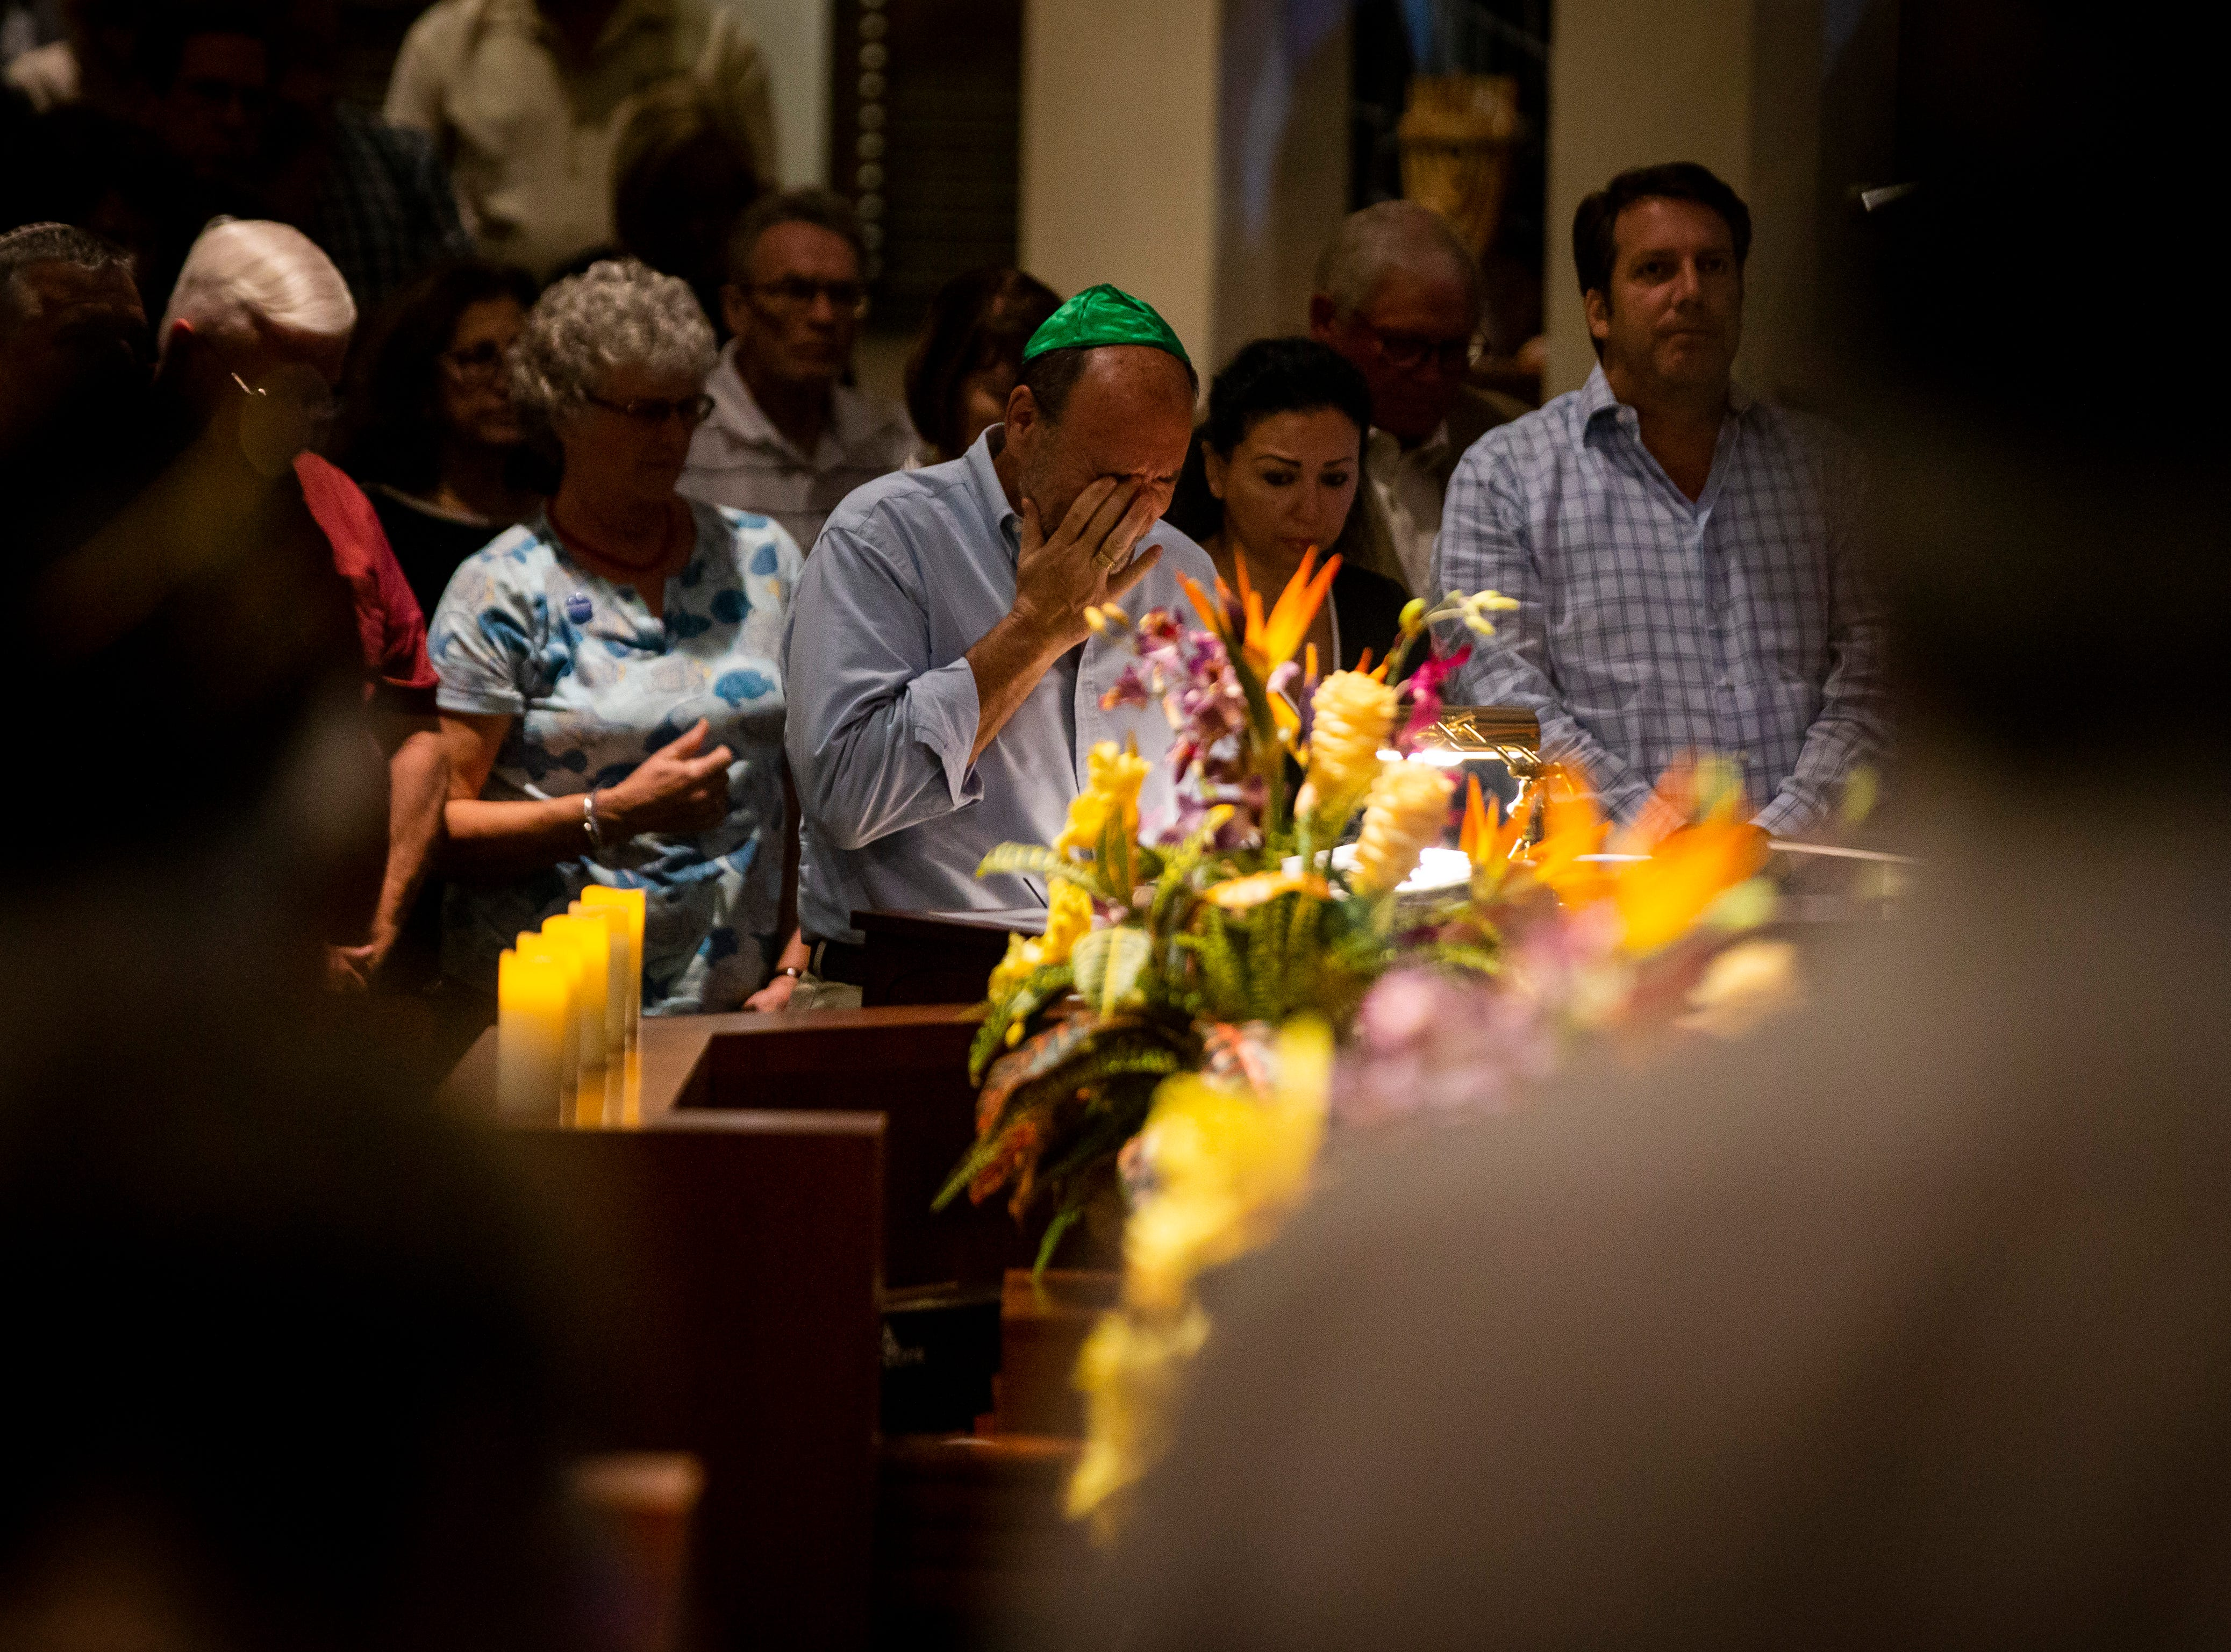 A congregant wipes his eye during an interfaith memorial vigil on Monday, October 29, 2018, at Temple Beth-El in Fort Myers.